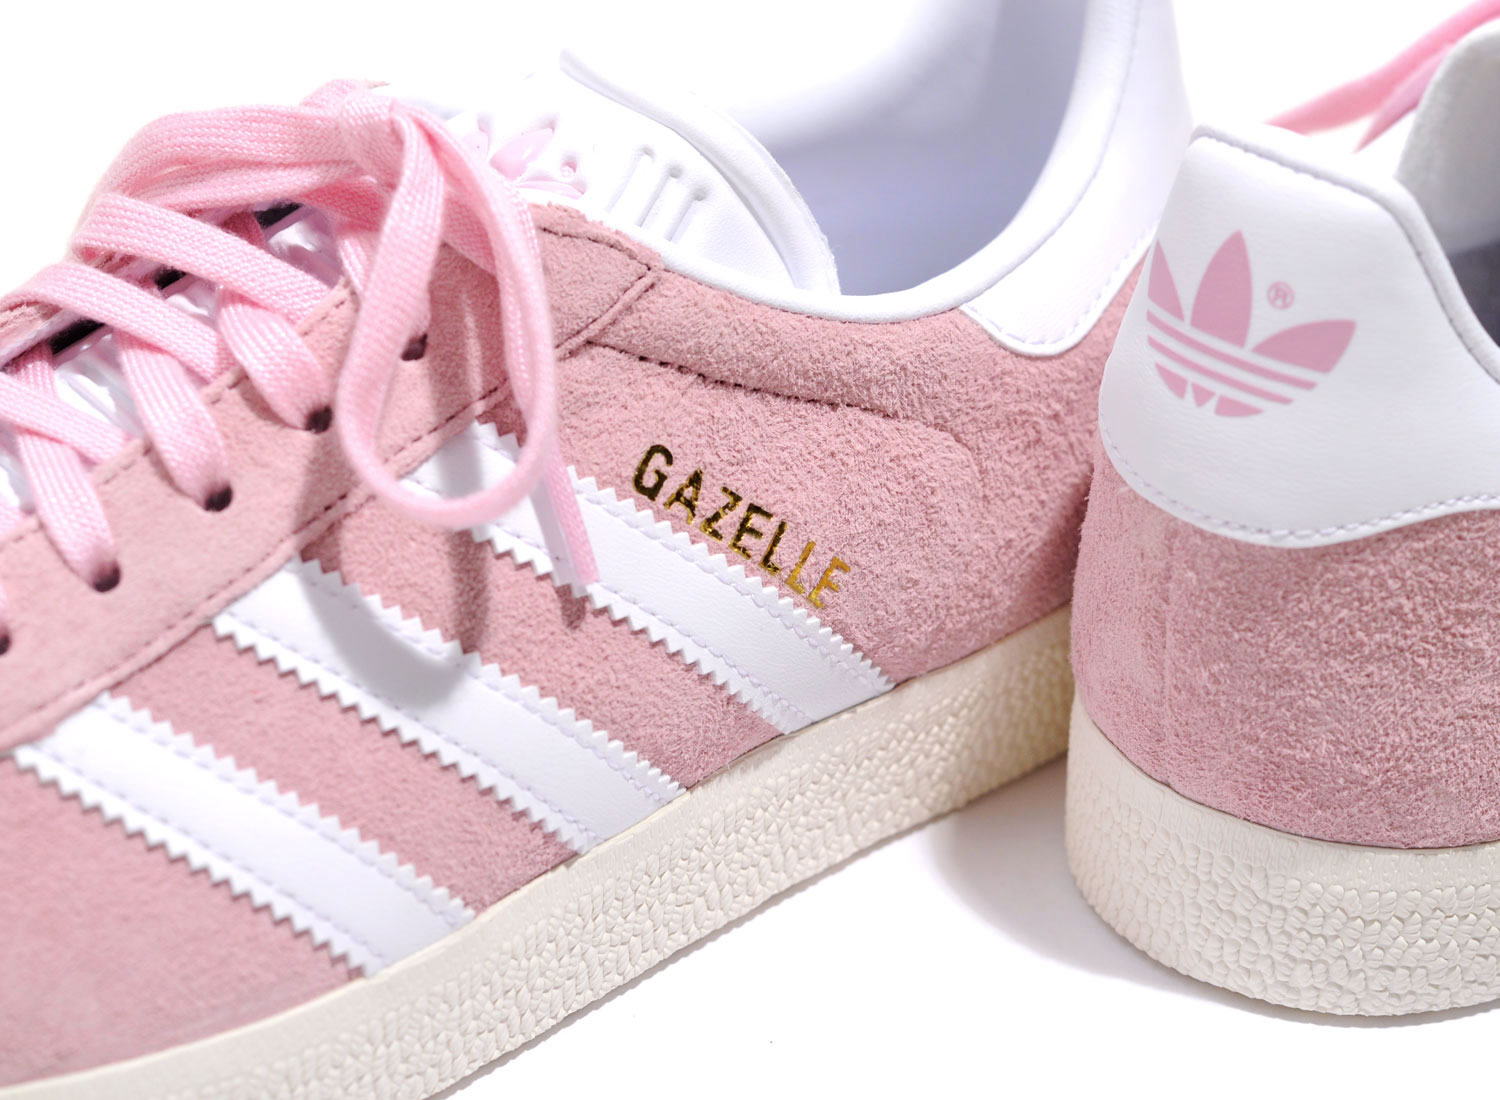 low priced dfe4c a7ffb Adidas Gazelle W Pink   White BY9352   Soldes   Novoid Plus